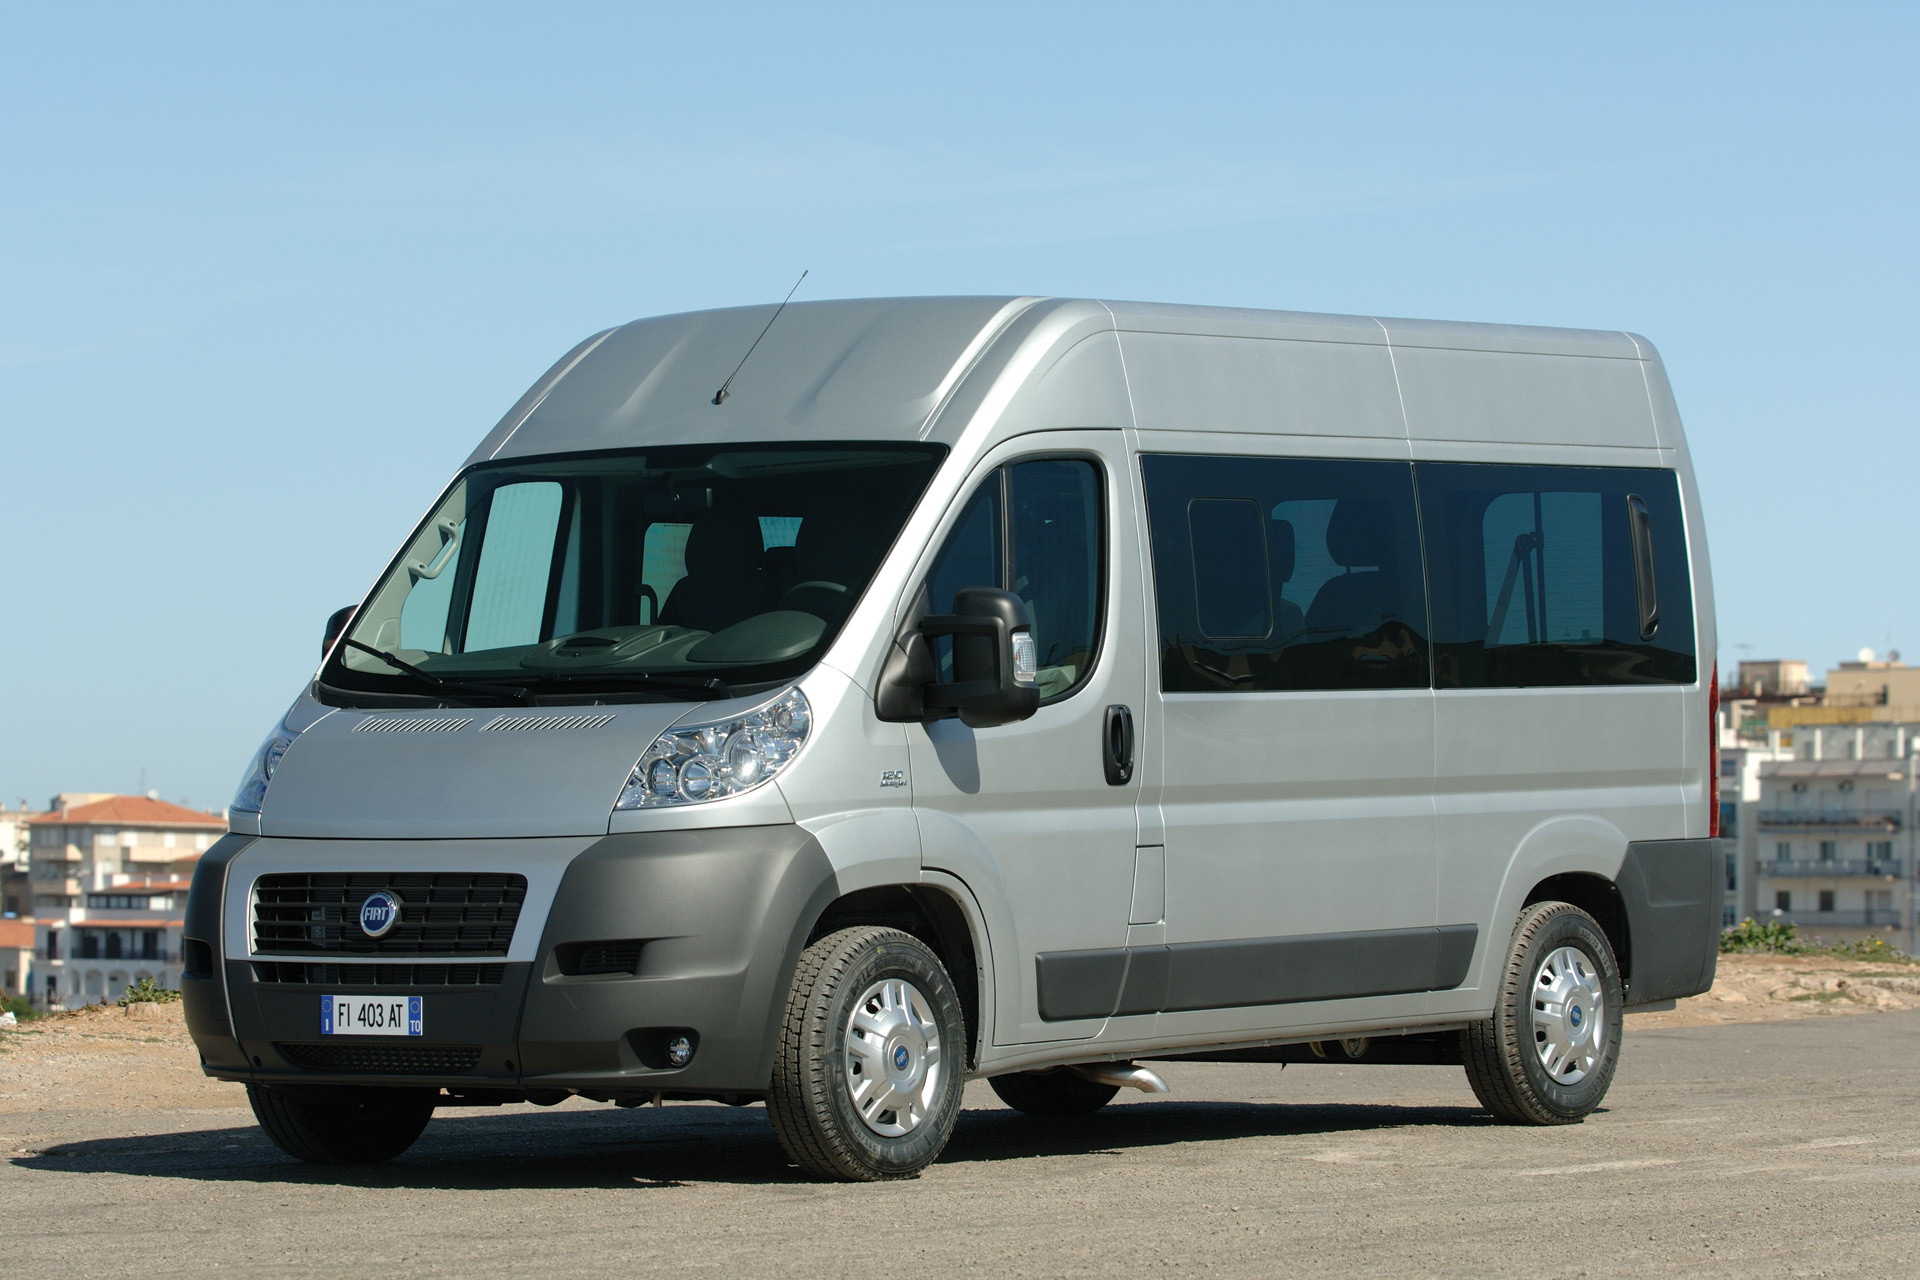 You can vote for this Fiat Ducato photo